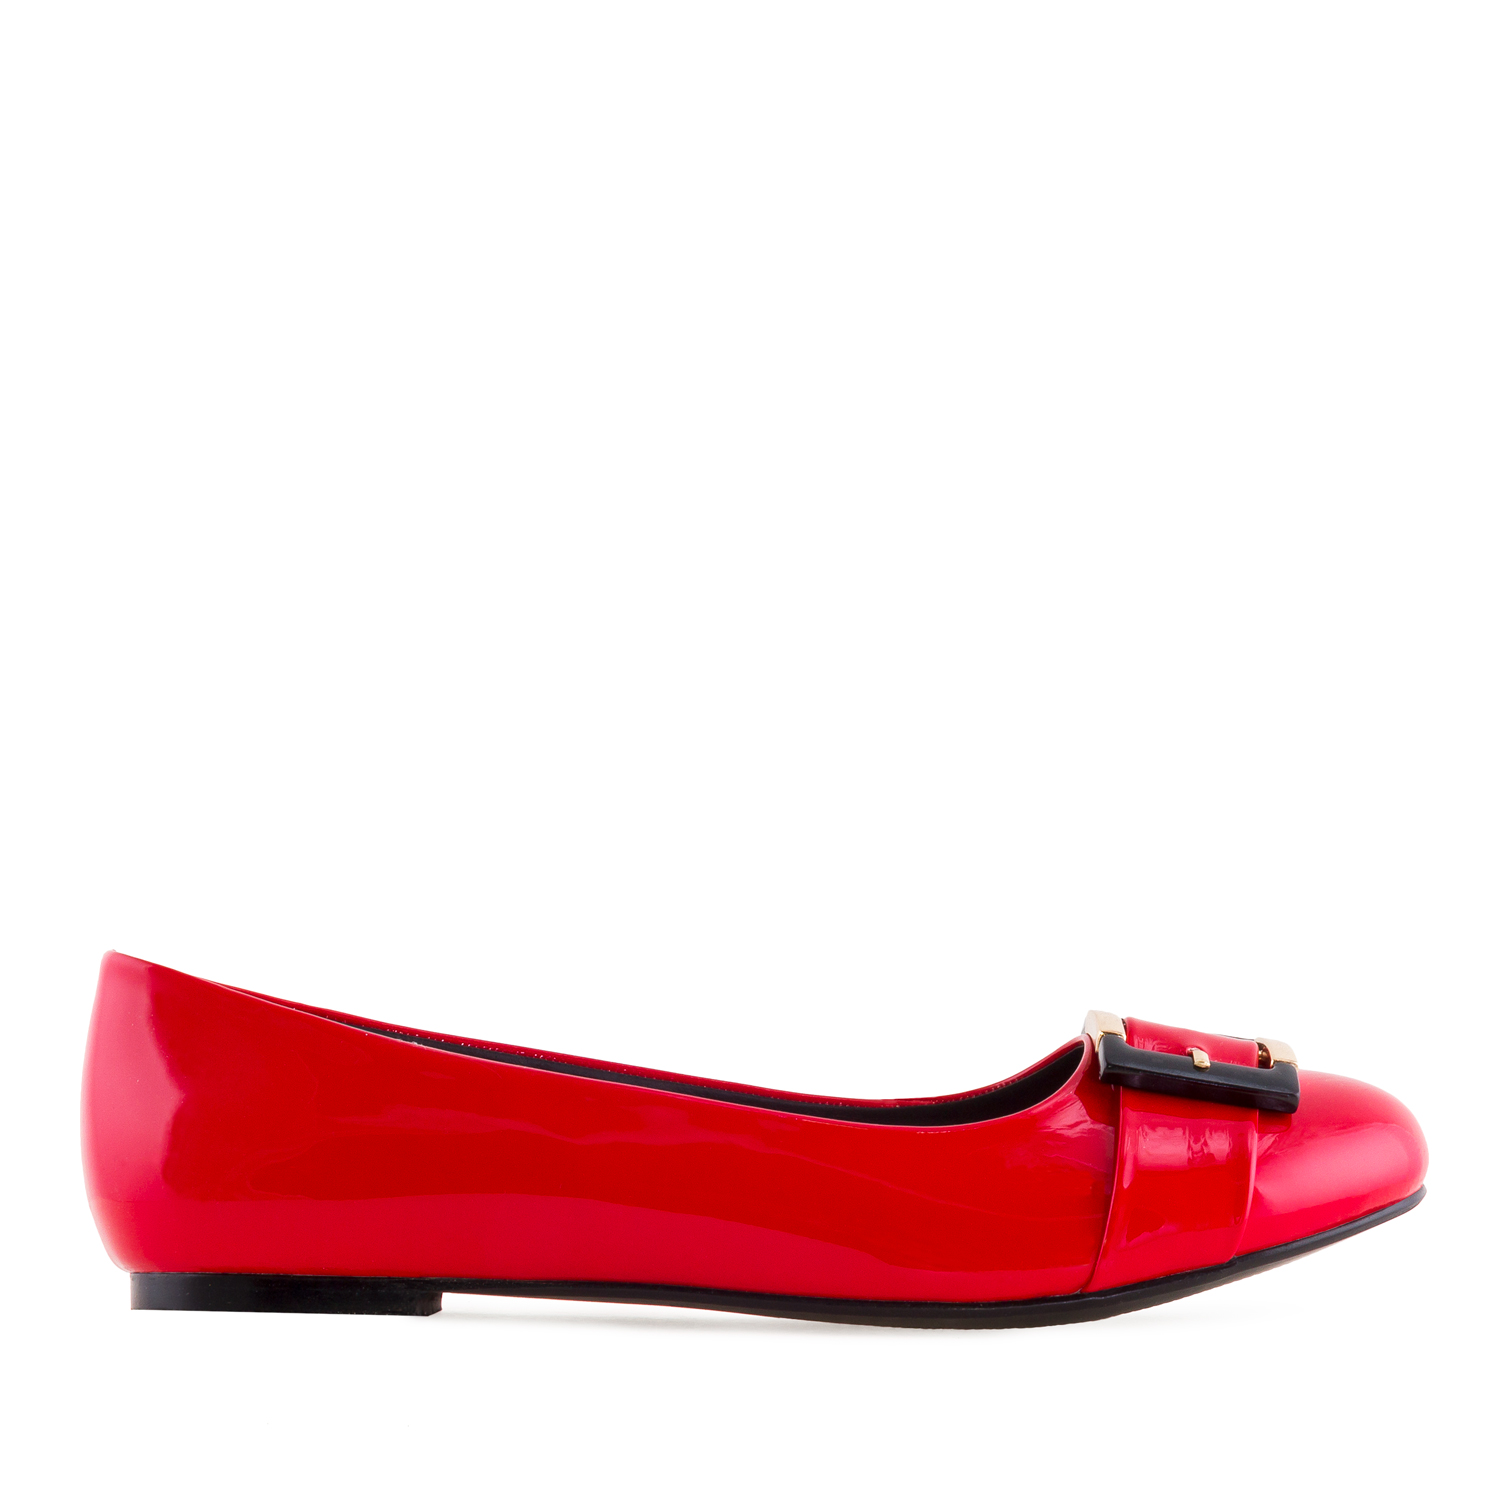 Buckled Ballet Flats in Red Patent